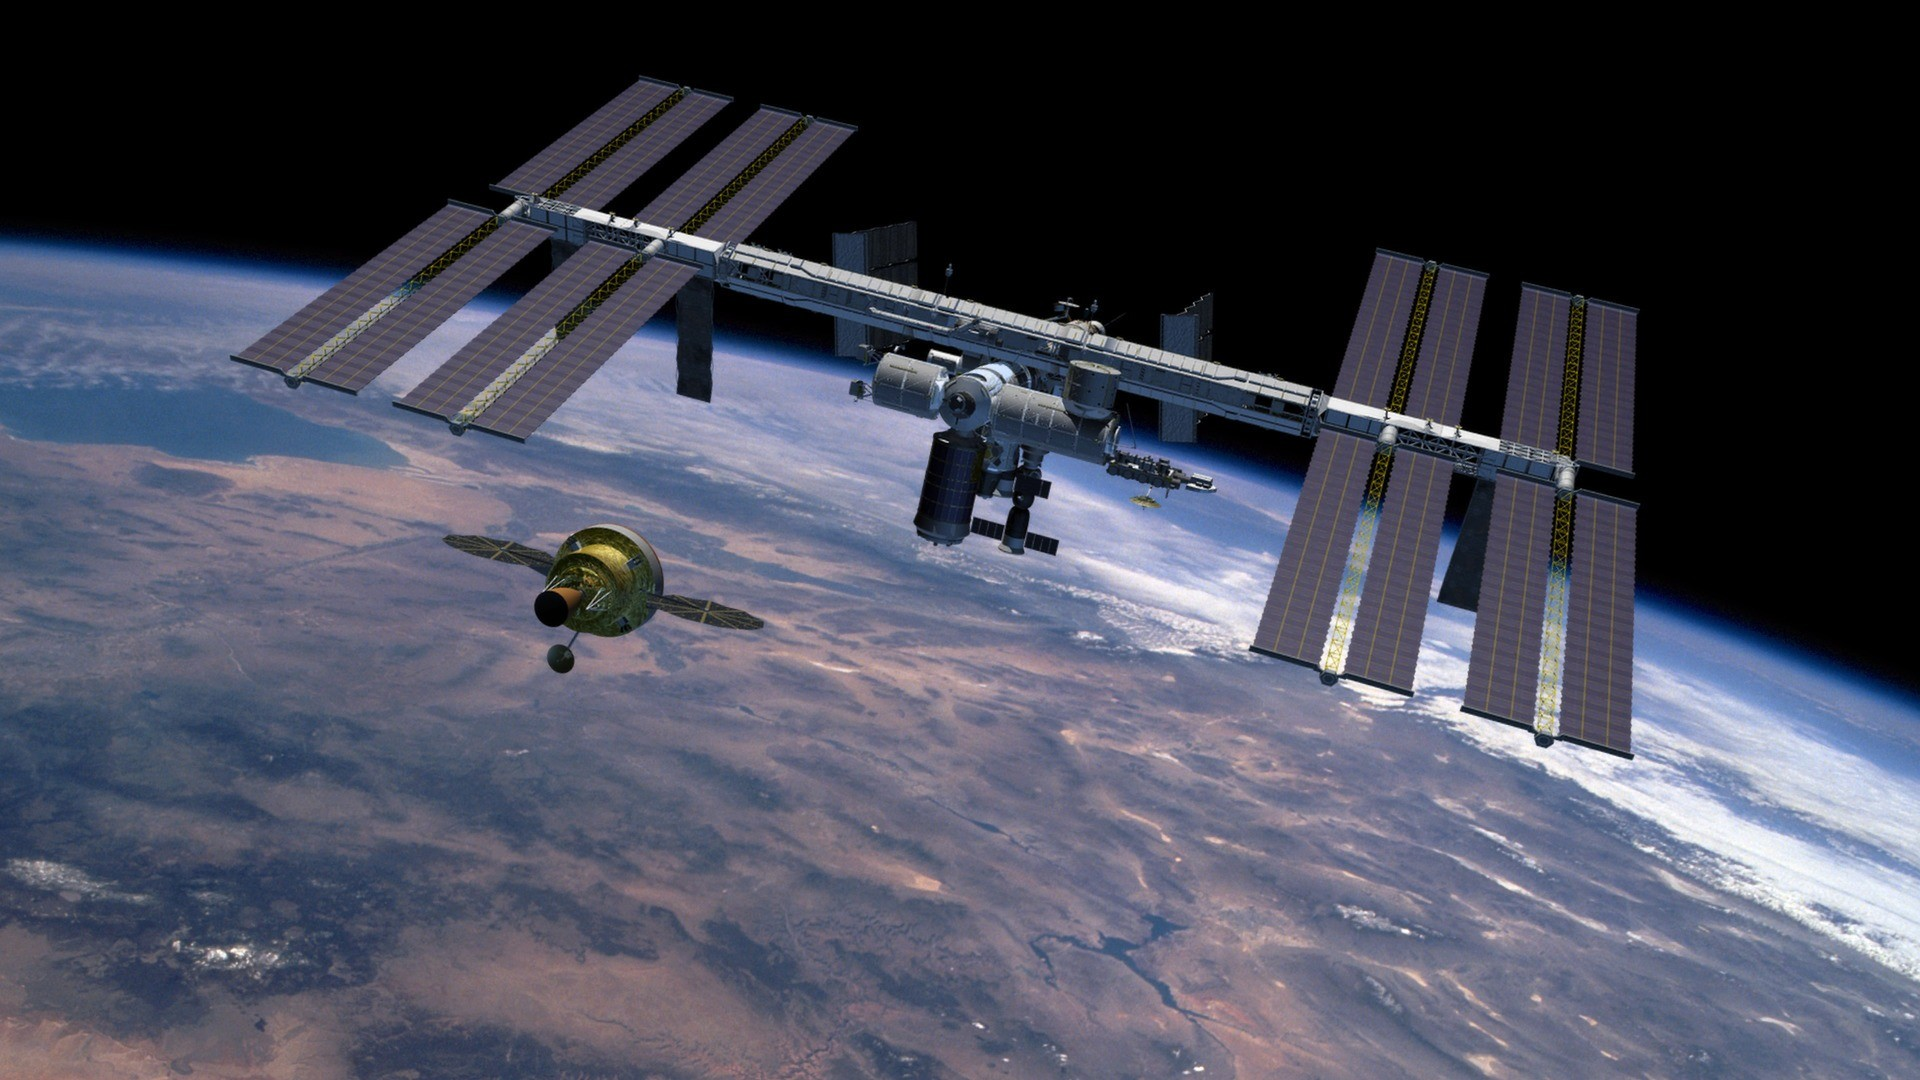 1920x1080 Nasa Orion Crew Exploration Vehicle. international space station ...